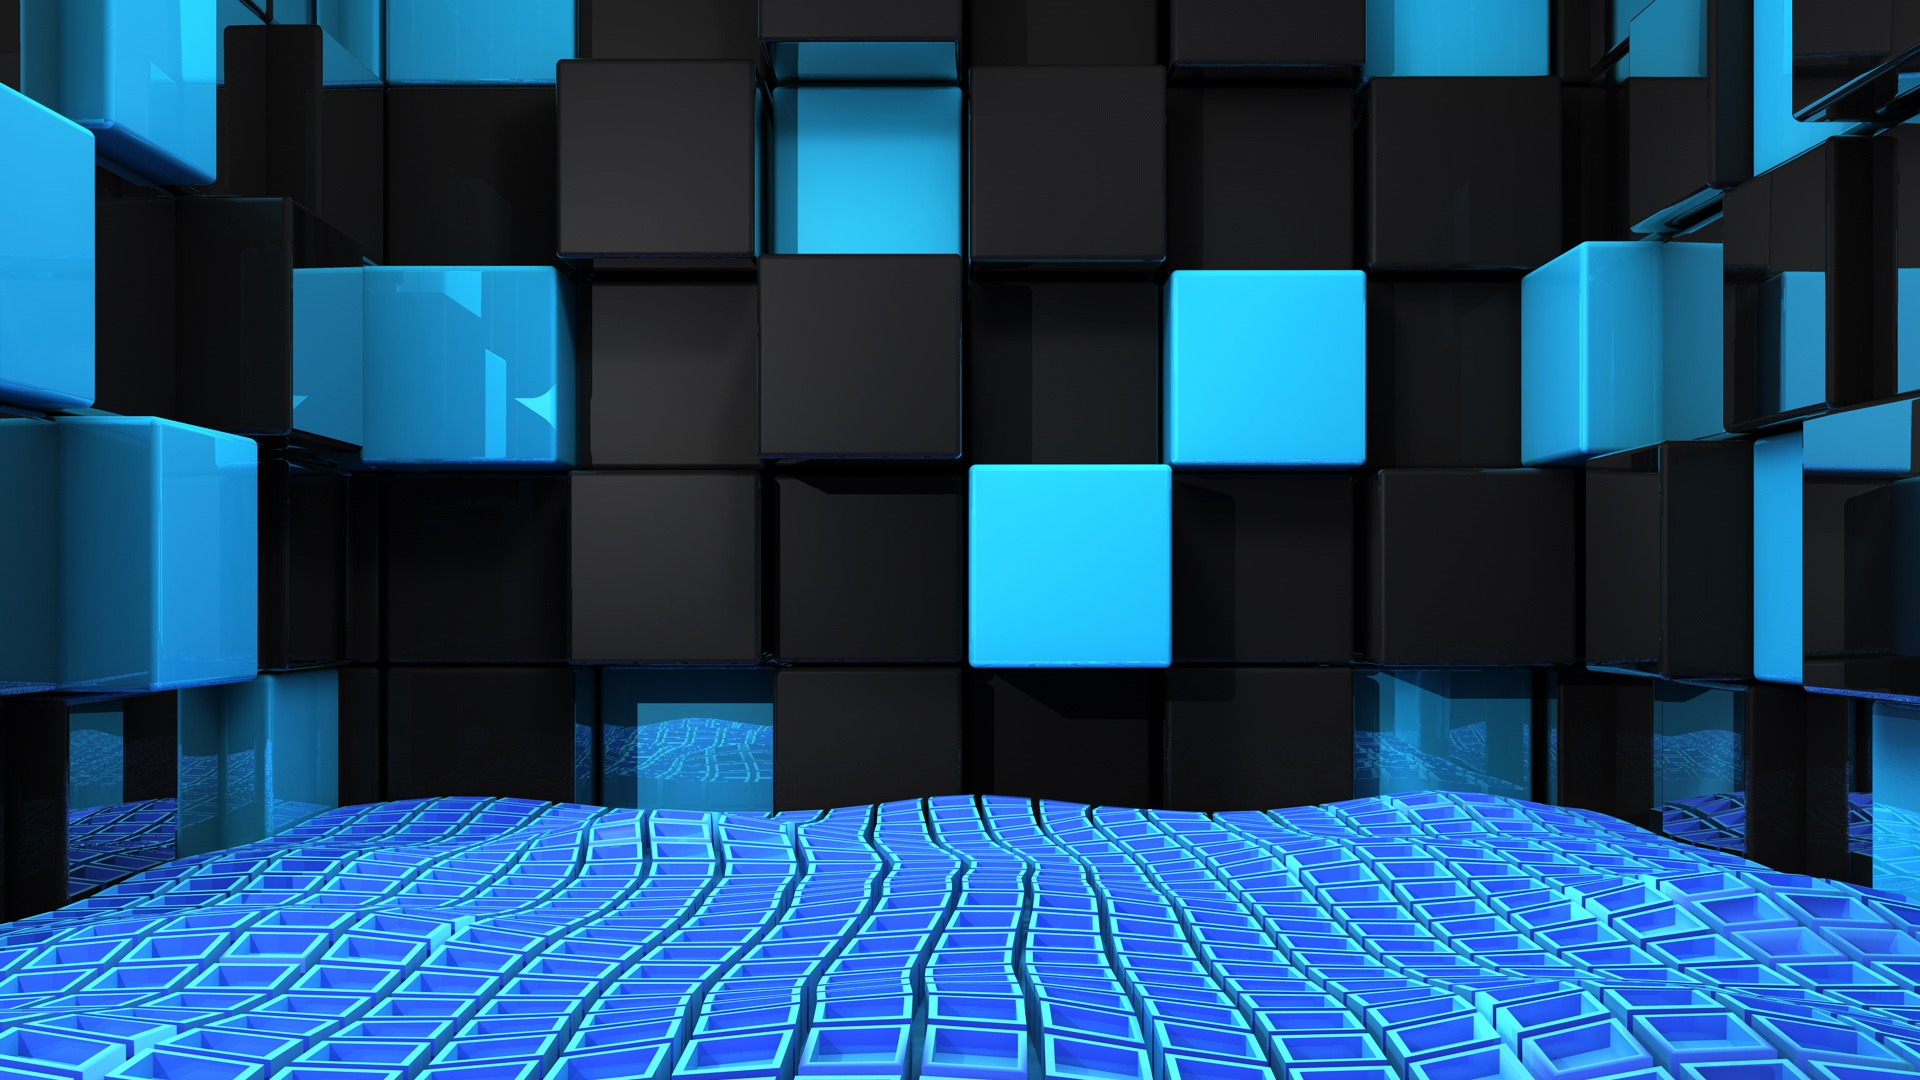 Hd 3d abstract wallpapers 1080p   SF Wallpaper 1920x1080